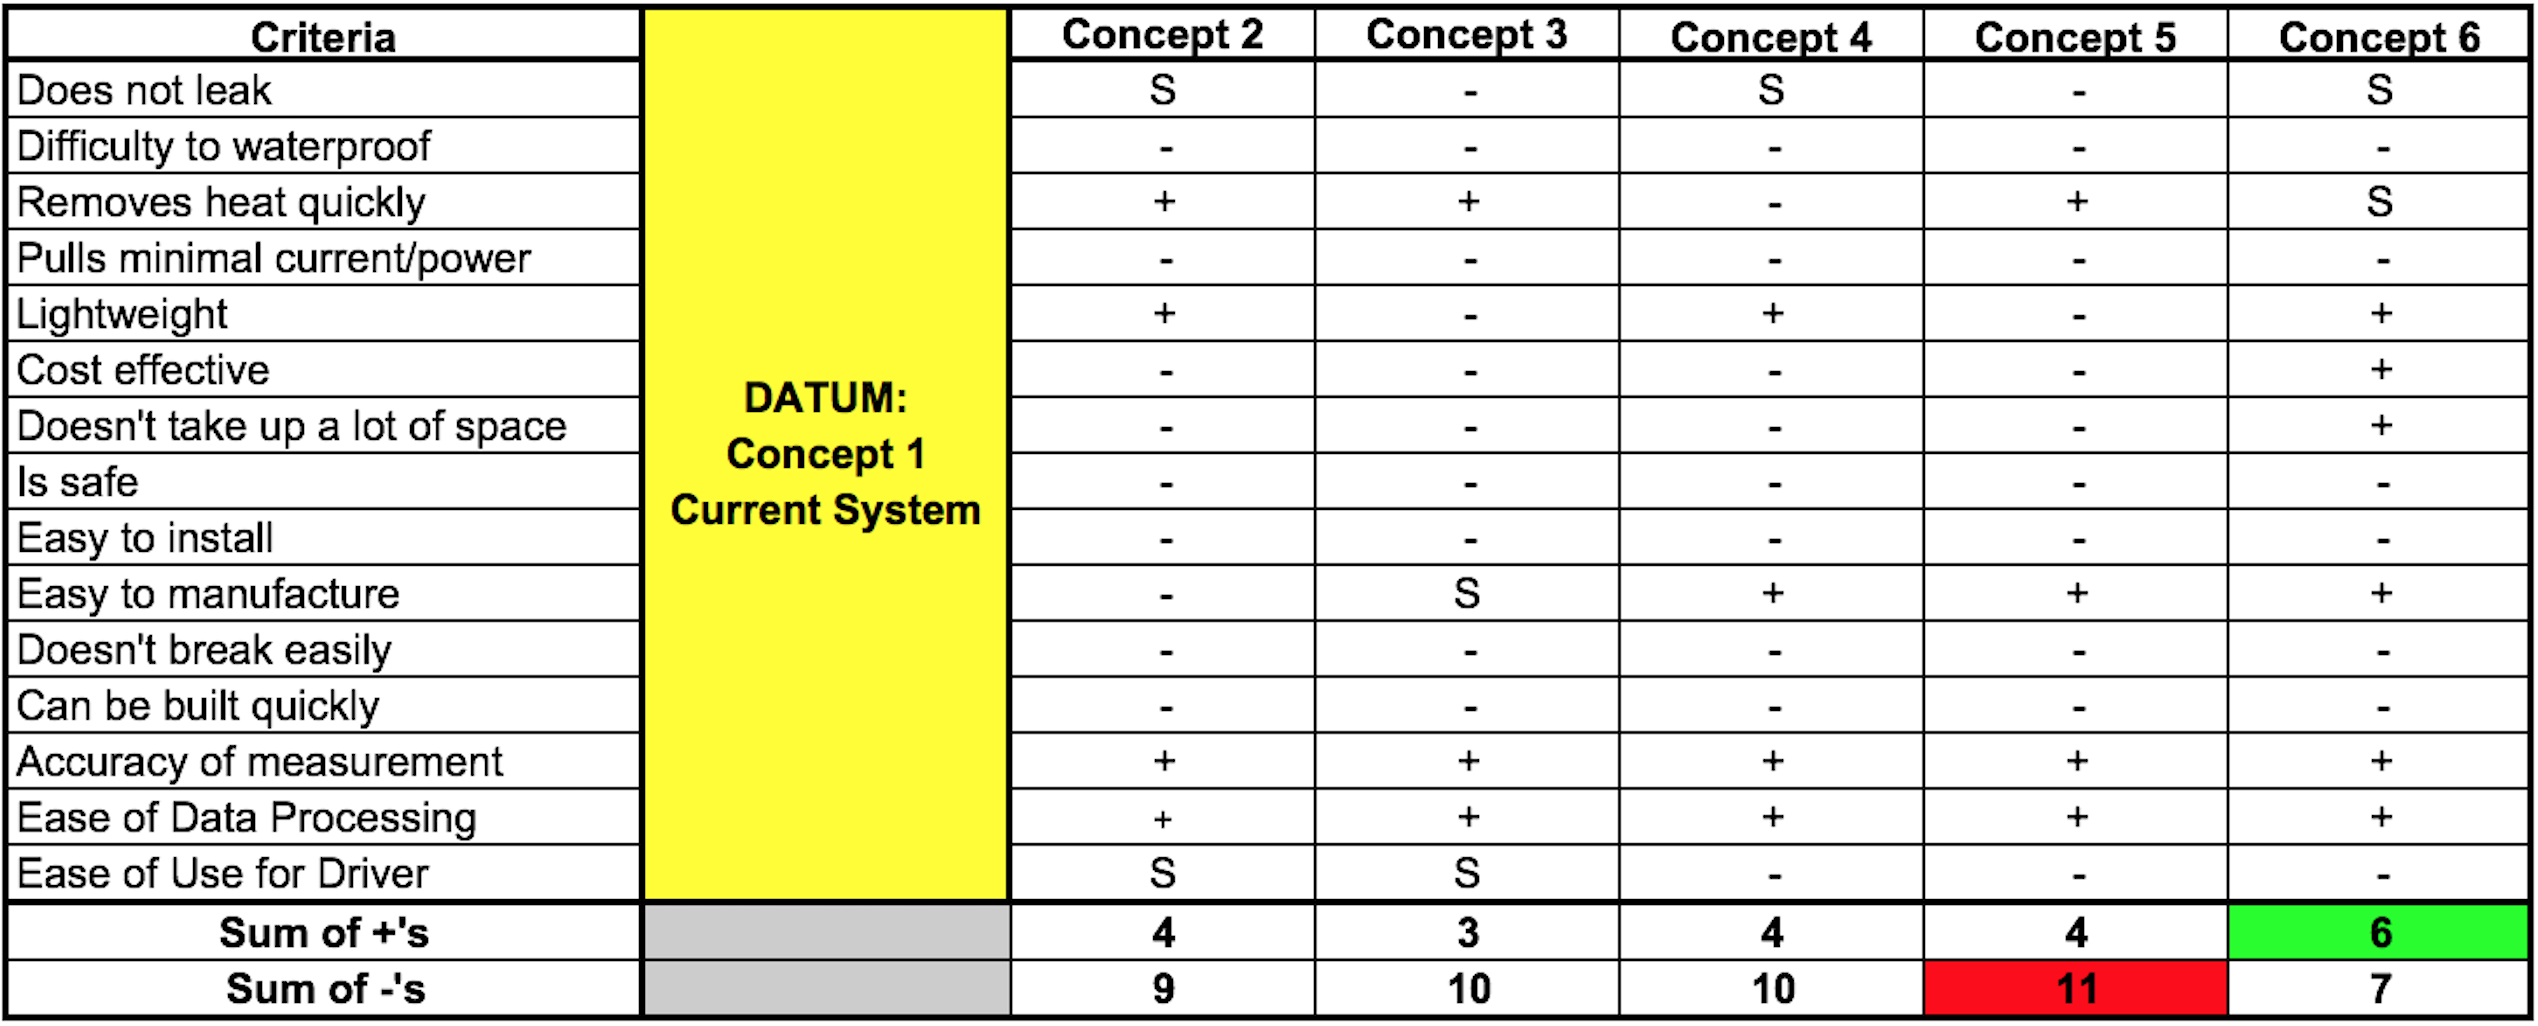 Pugh Chart with Concept 1 (Current System) as the Datum